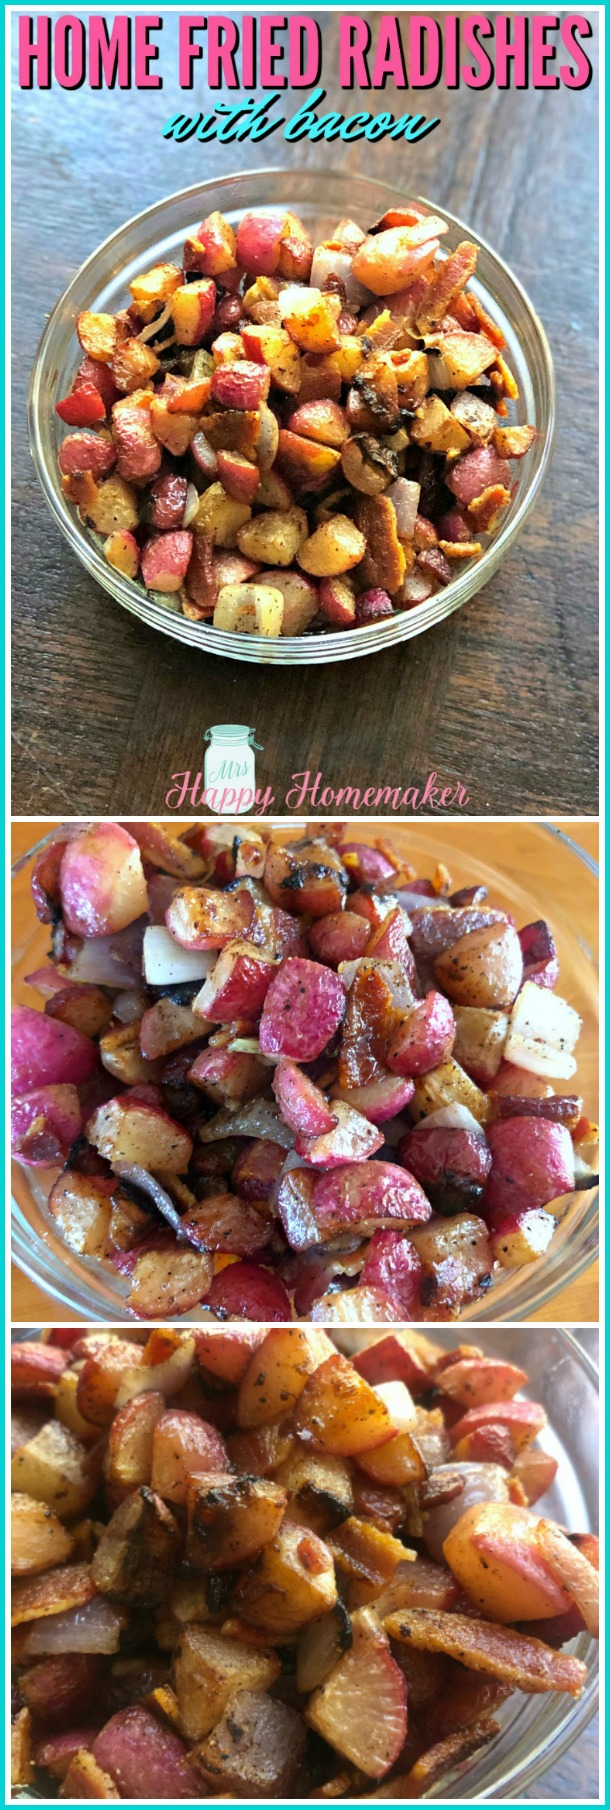 Home Fried Radishes with Bacon